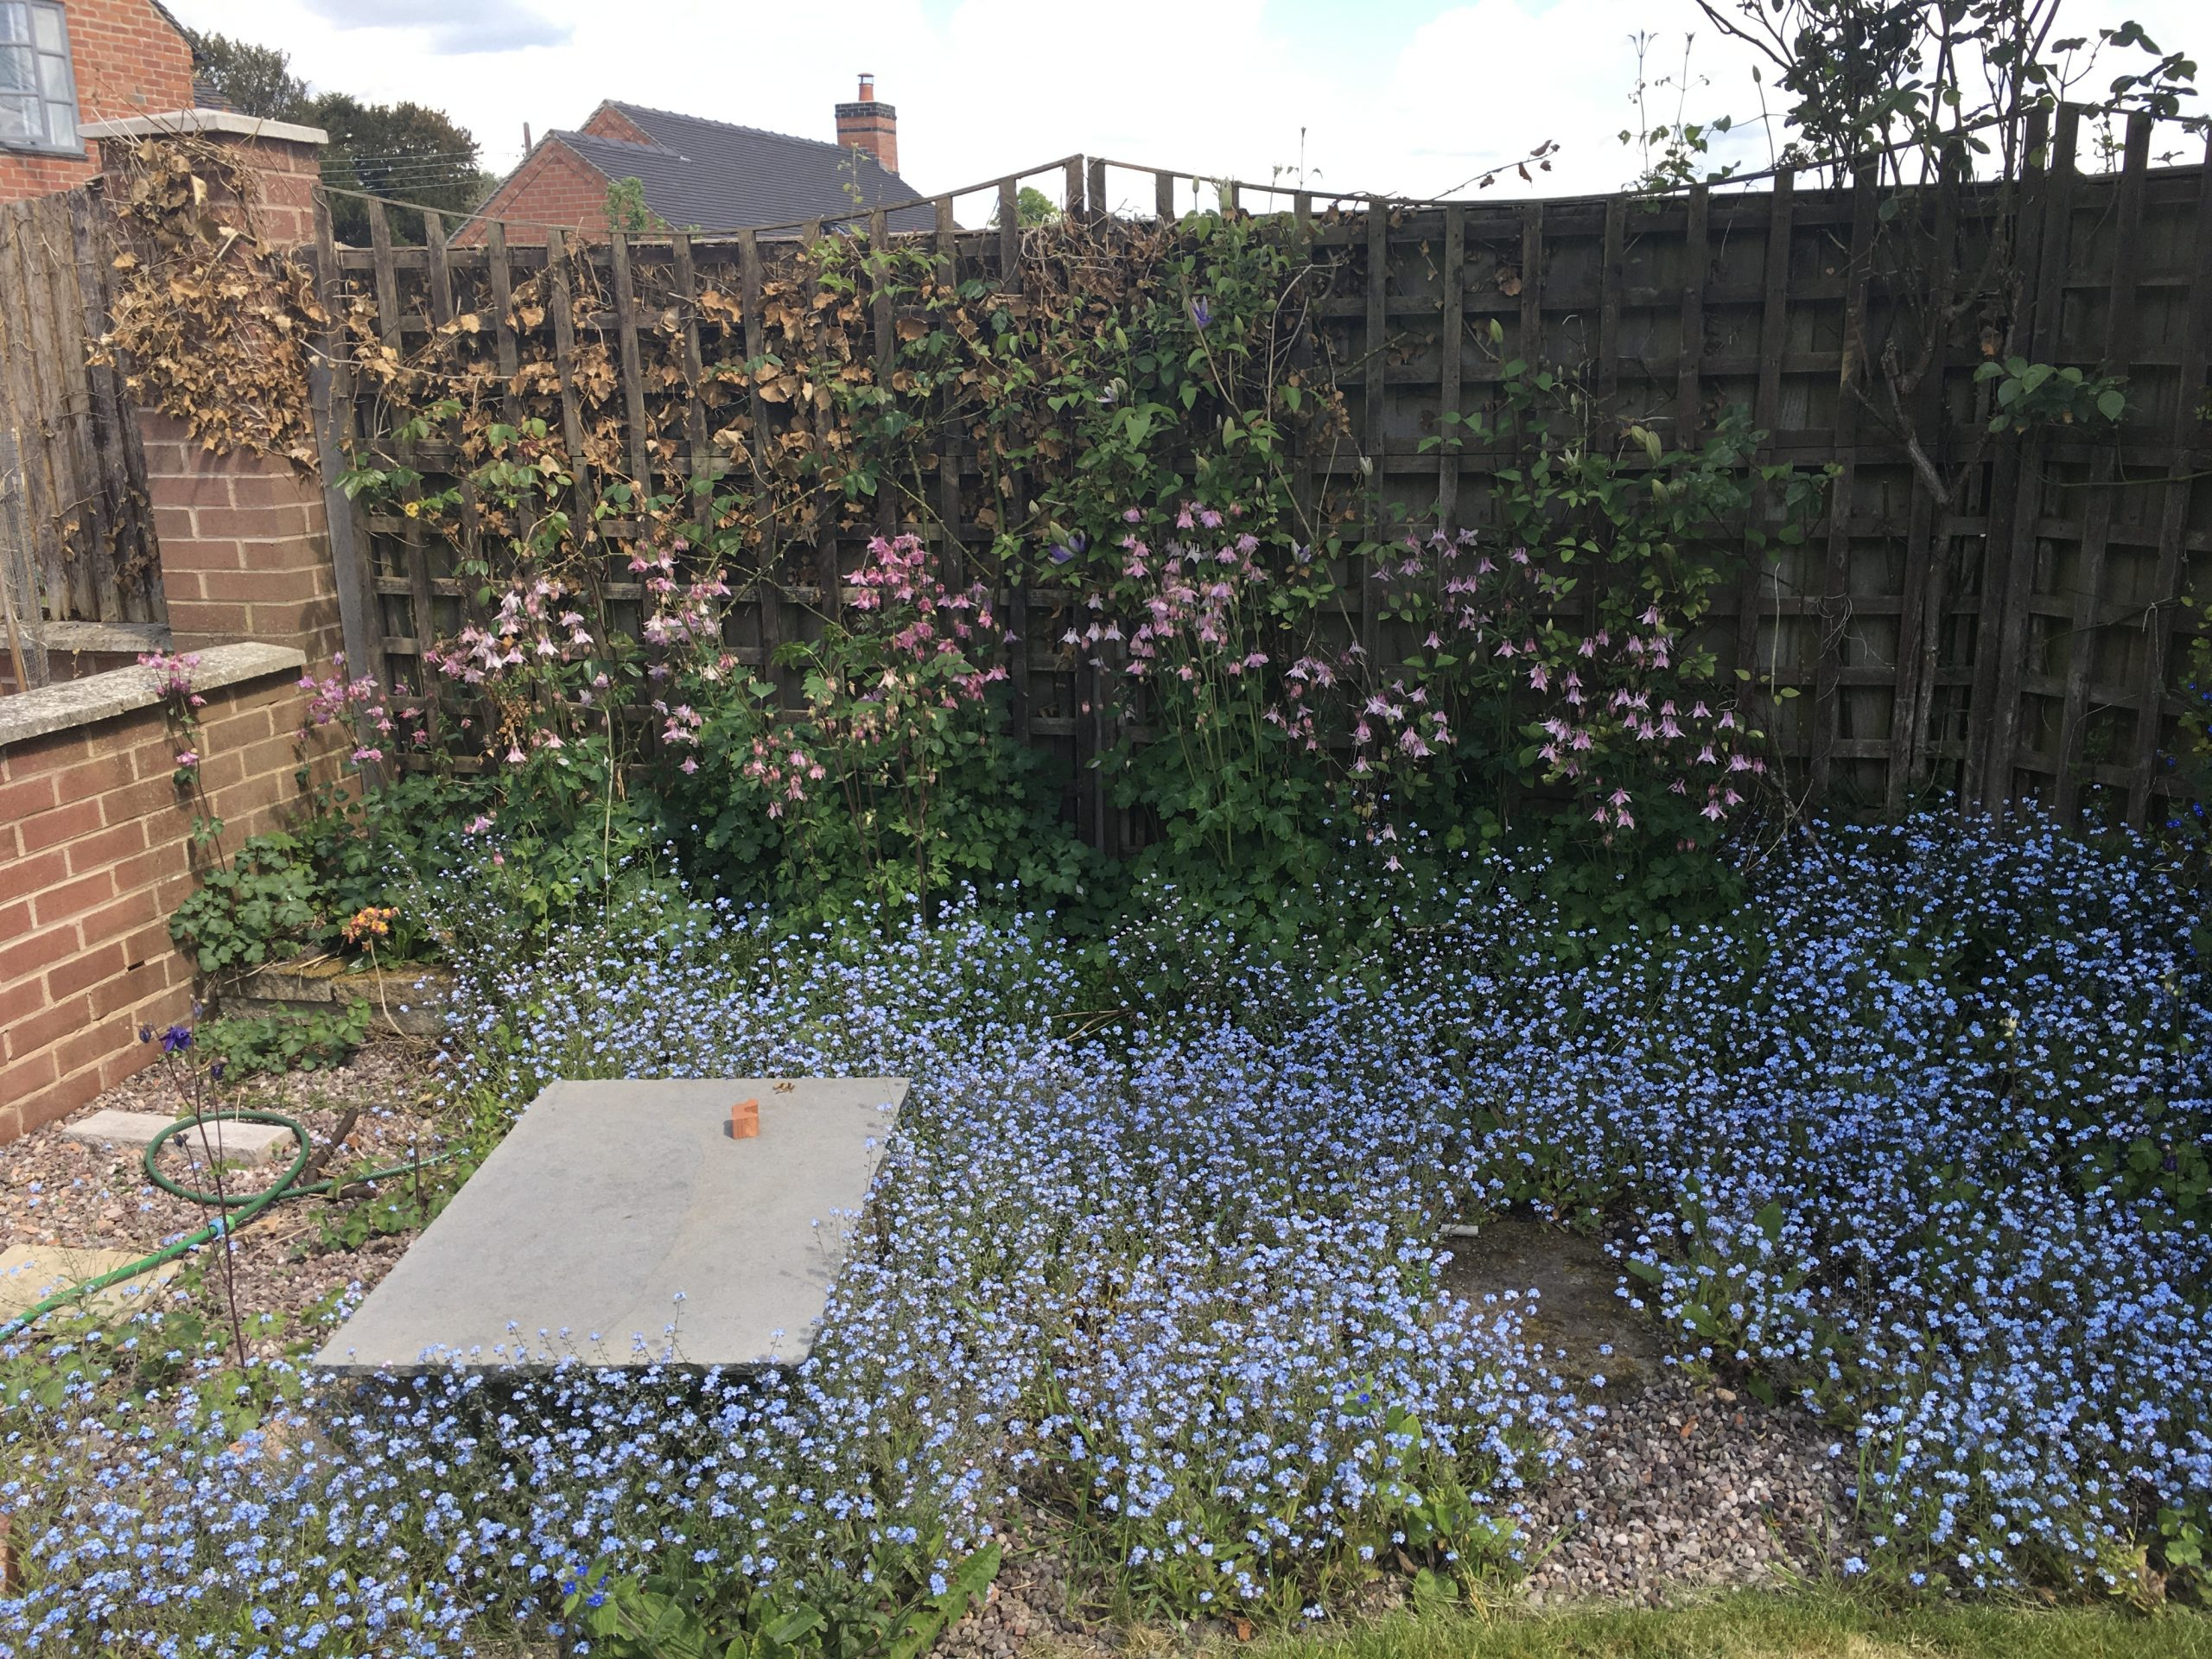 Carpet of forget-me-not